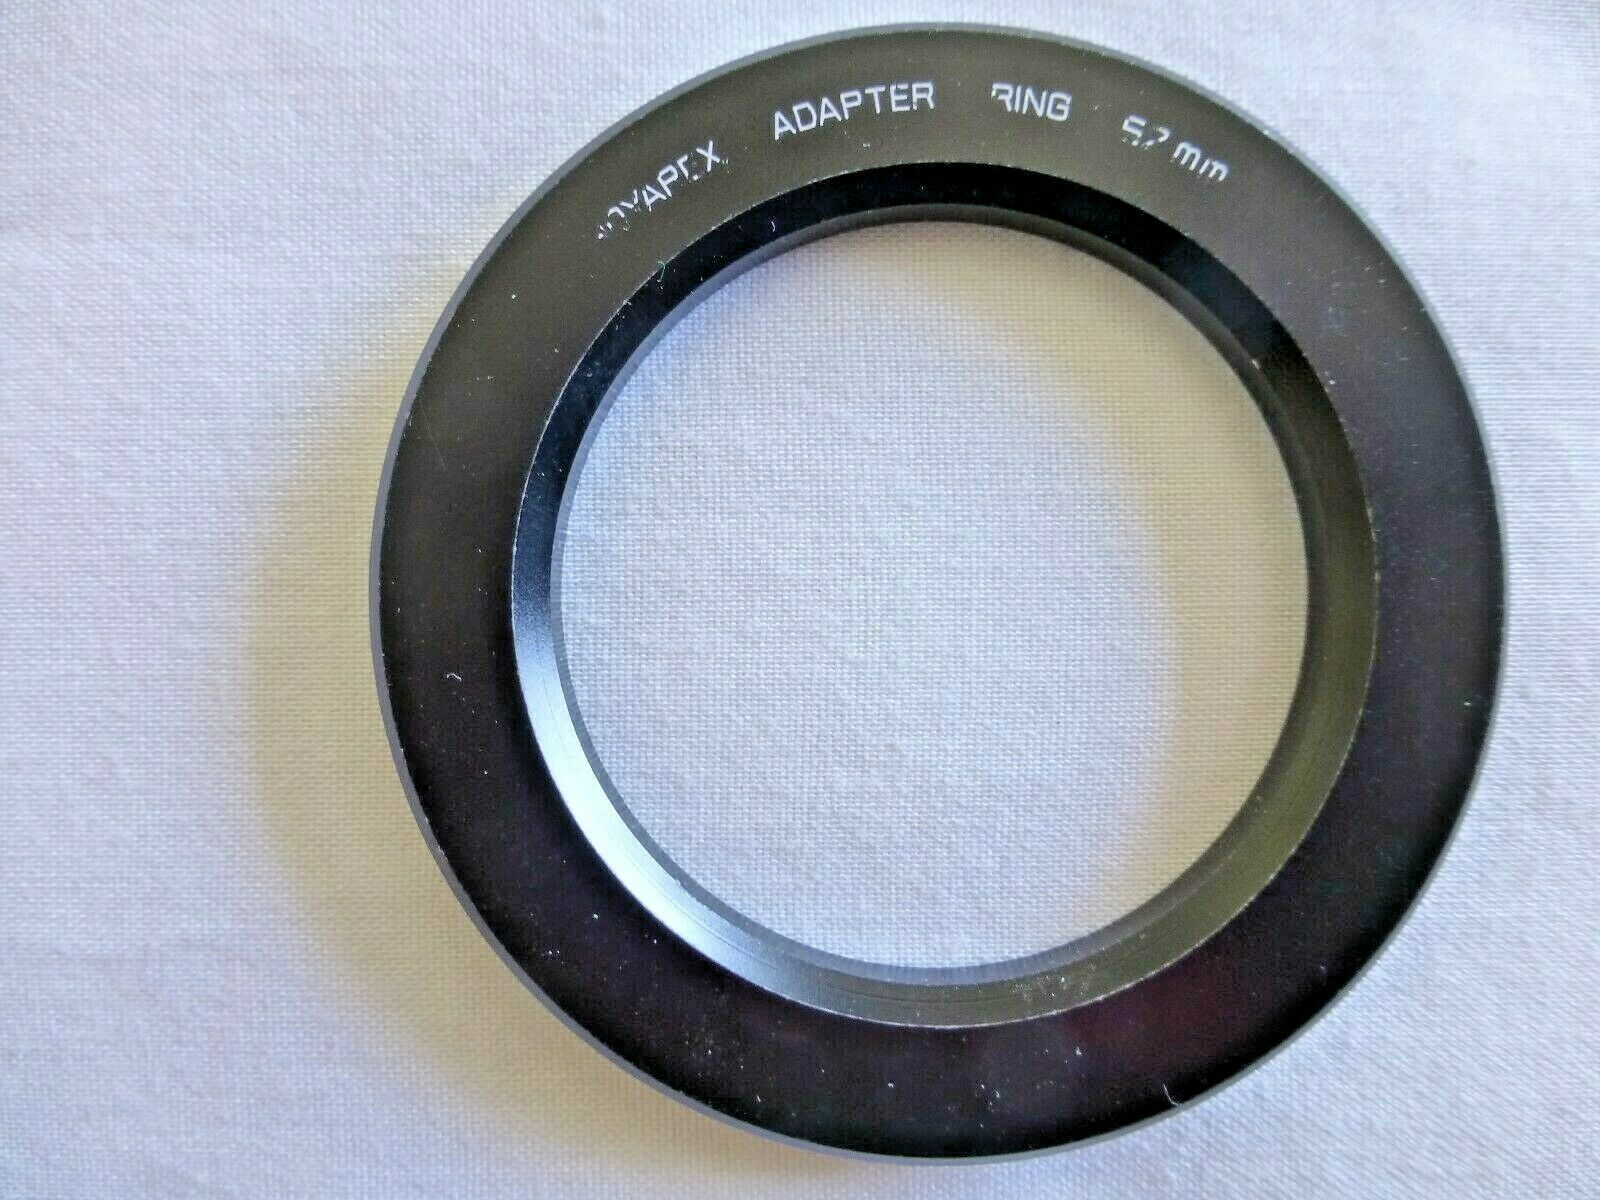 Hoya Genuine Hoyarex Adapter Ring 52mm for Hoyarex Holder Used Bin # H52u - $9.46